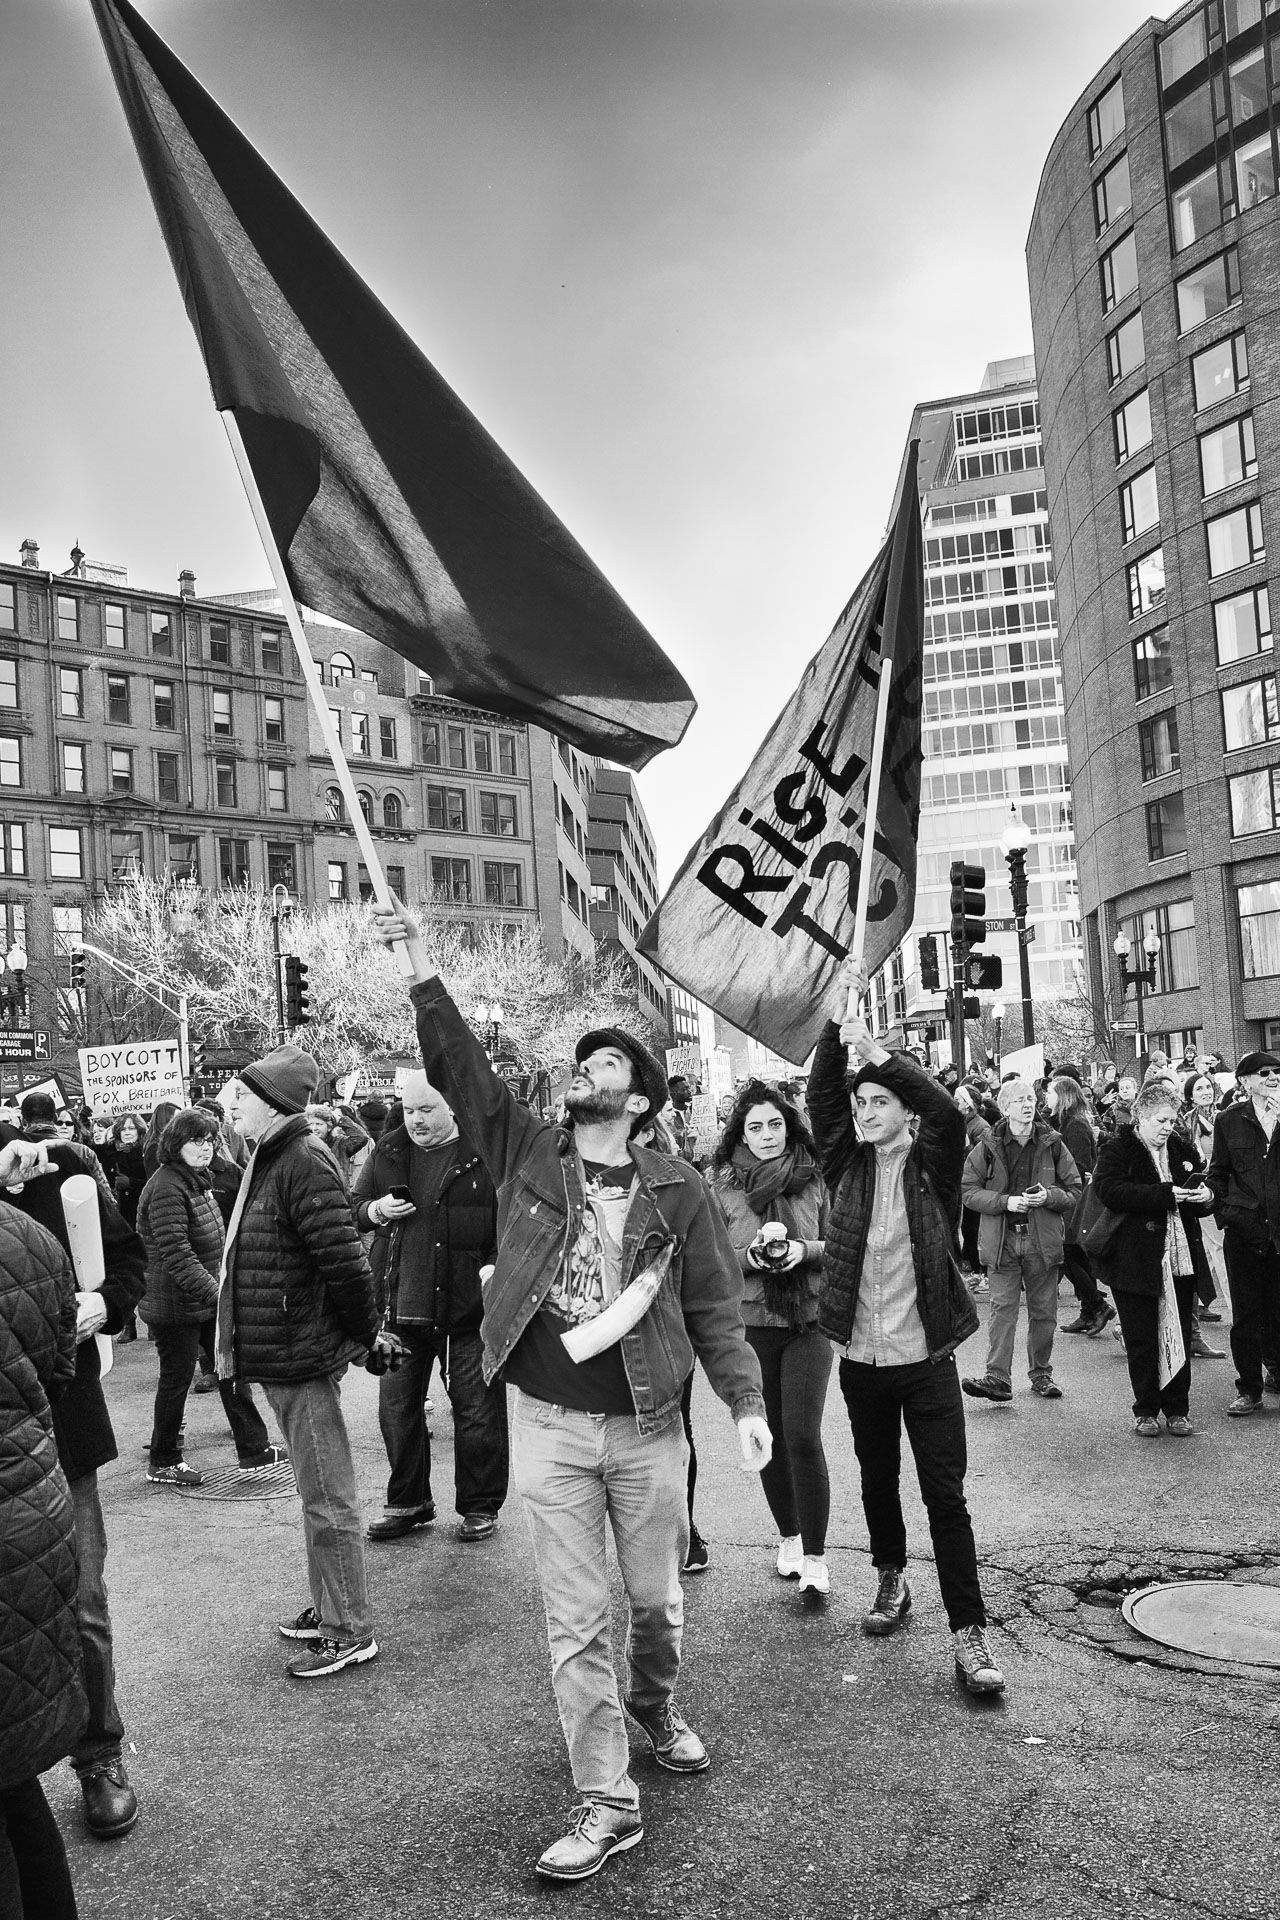 BostonWomensMarch - 20170121-2420-Edit.jpg